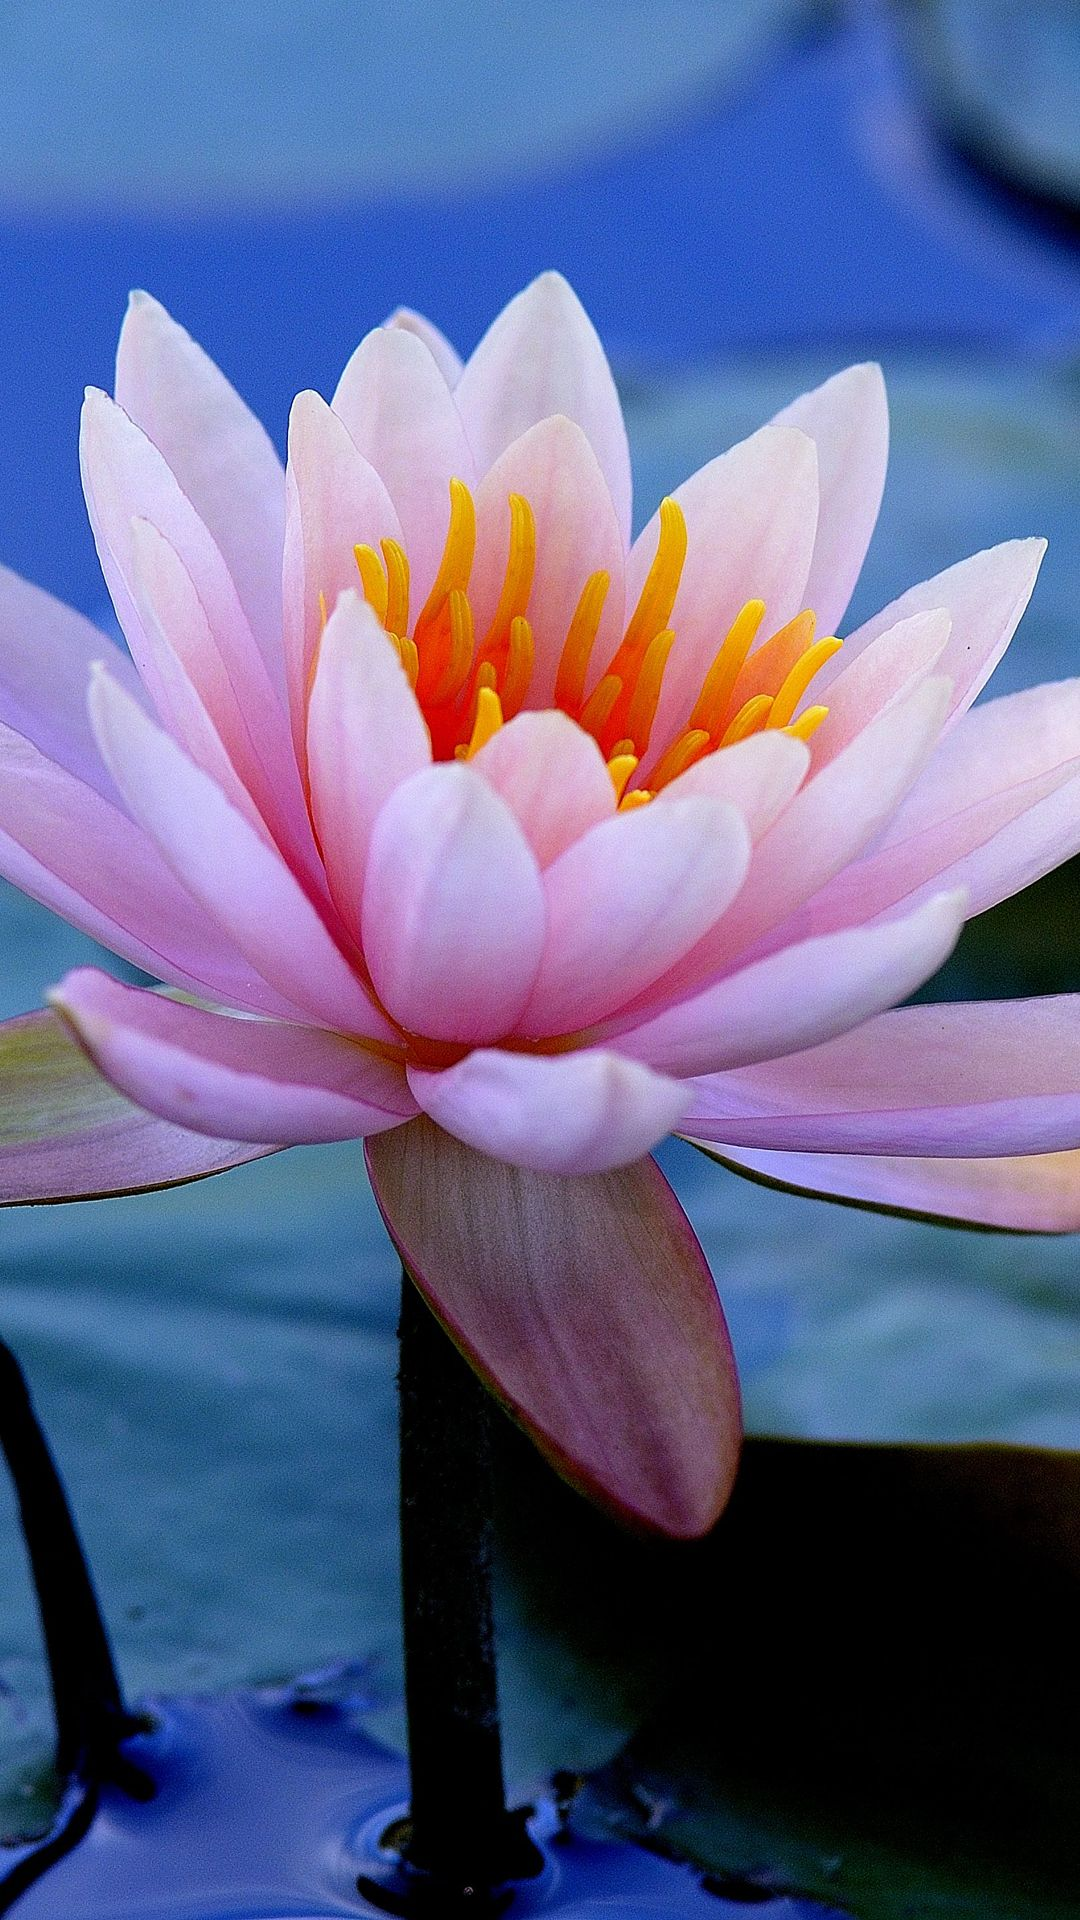 Earth Water Lily Flowers closeup flower nature pink